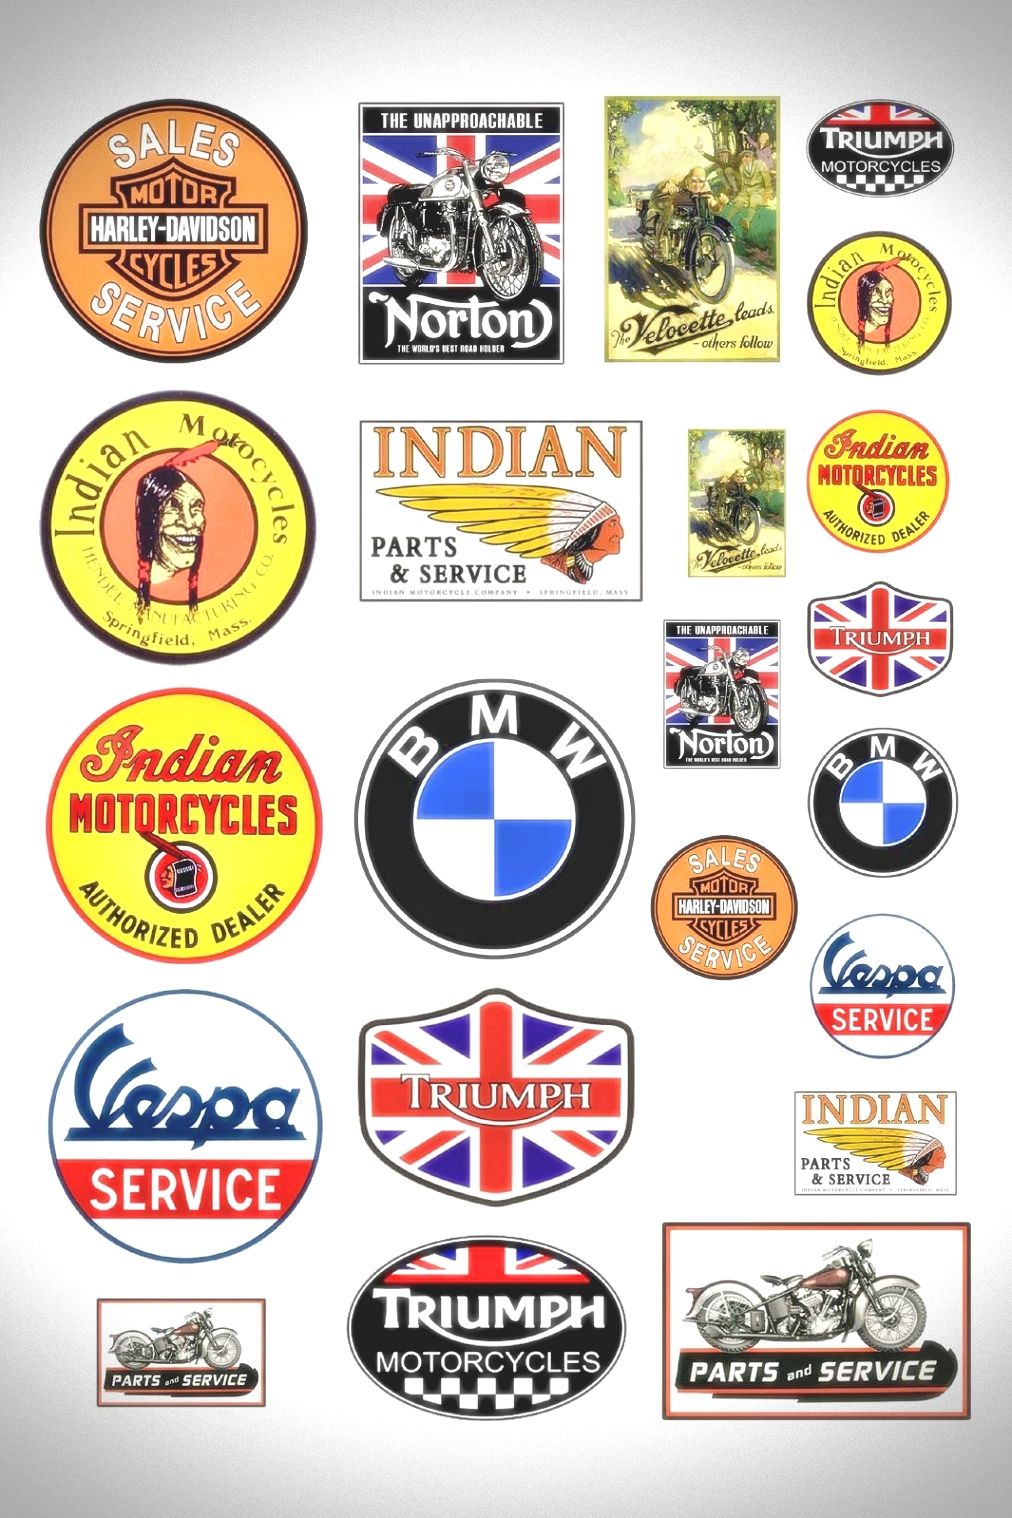 Model Makers Metal Signs Bespoke Signs for Models Train /& Rail Layout Sign